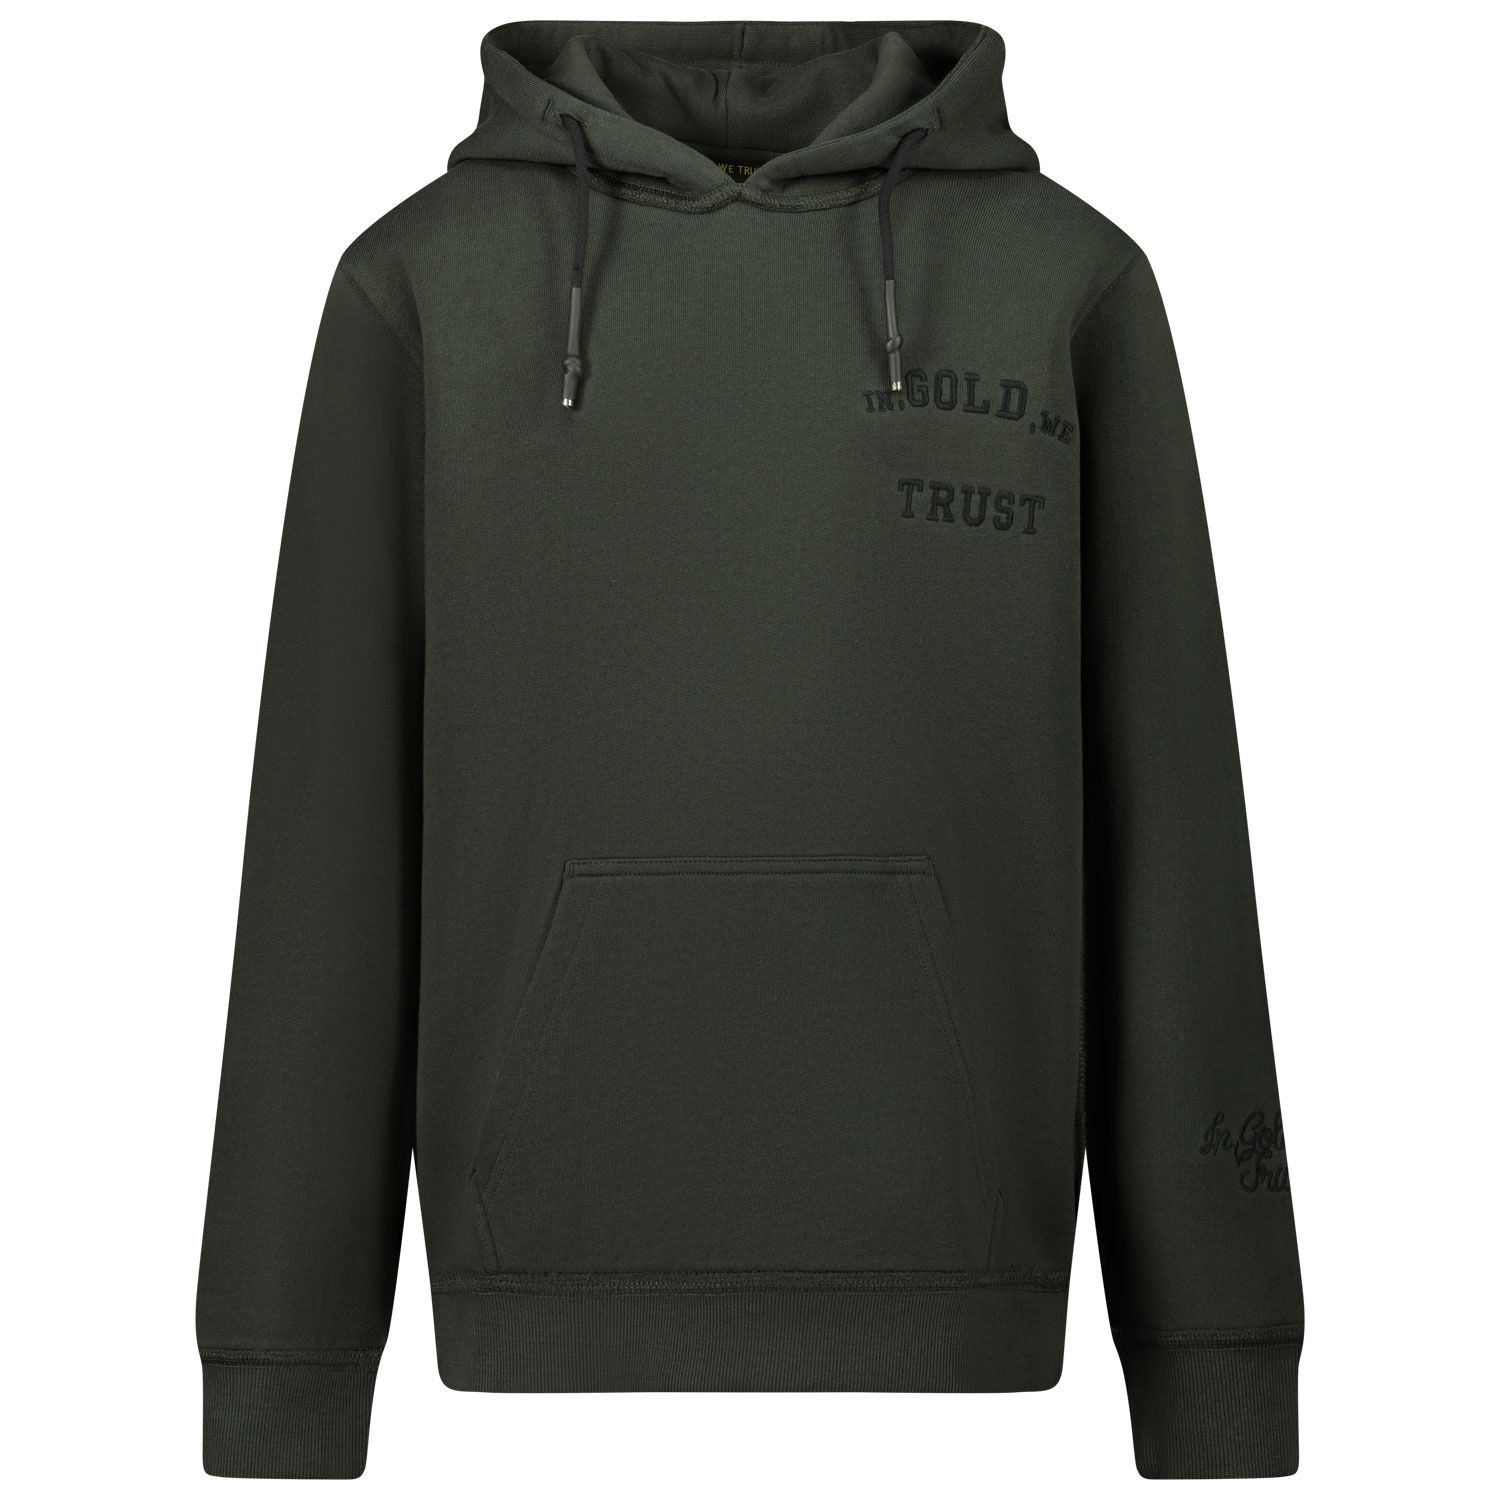 Bild von in Gold We Trust THE REAKWON HOODY Kinderpullover Camouflage